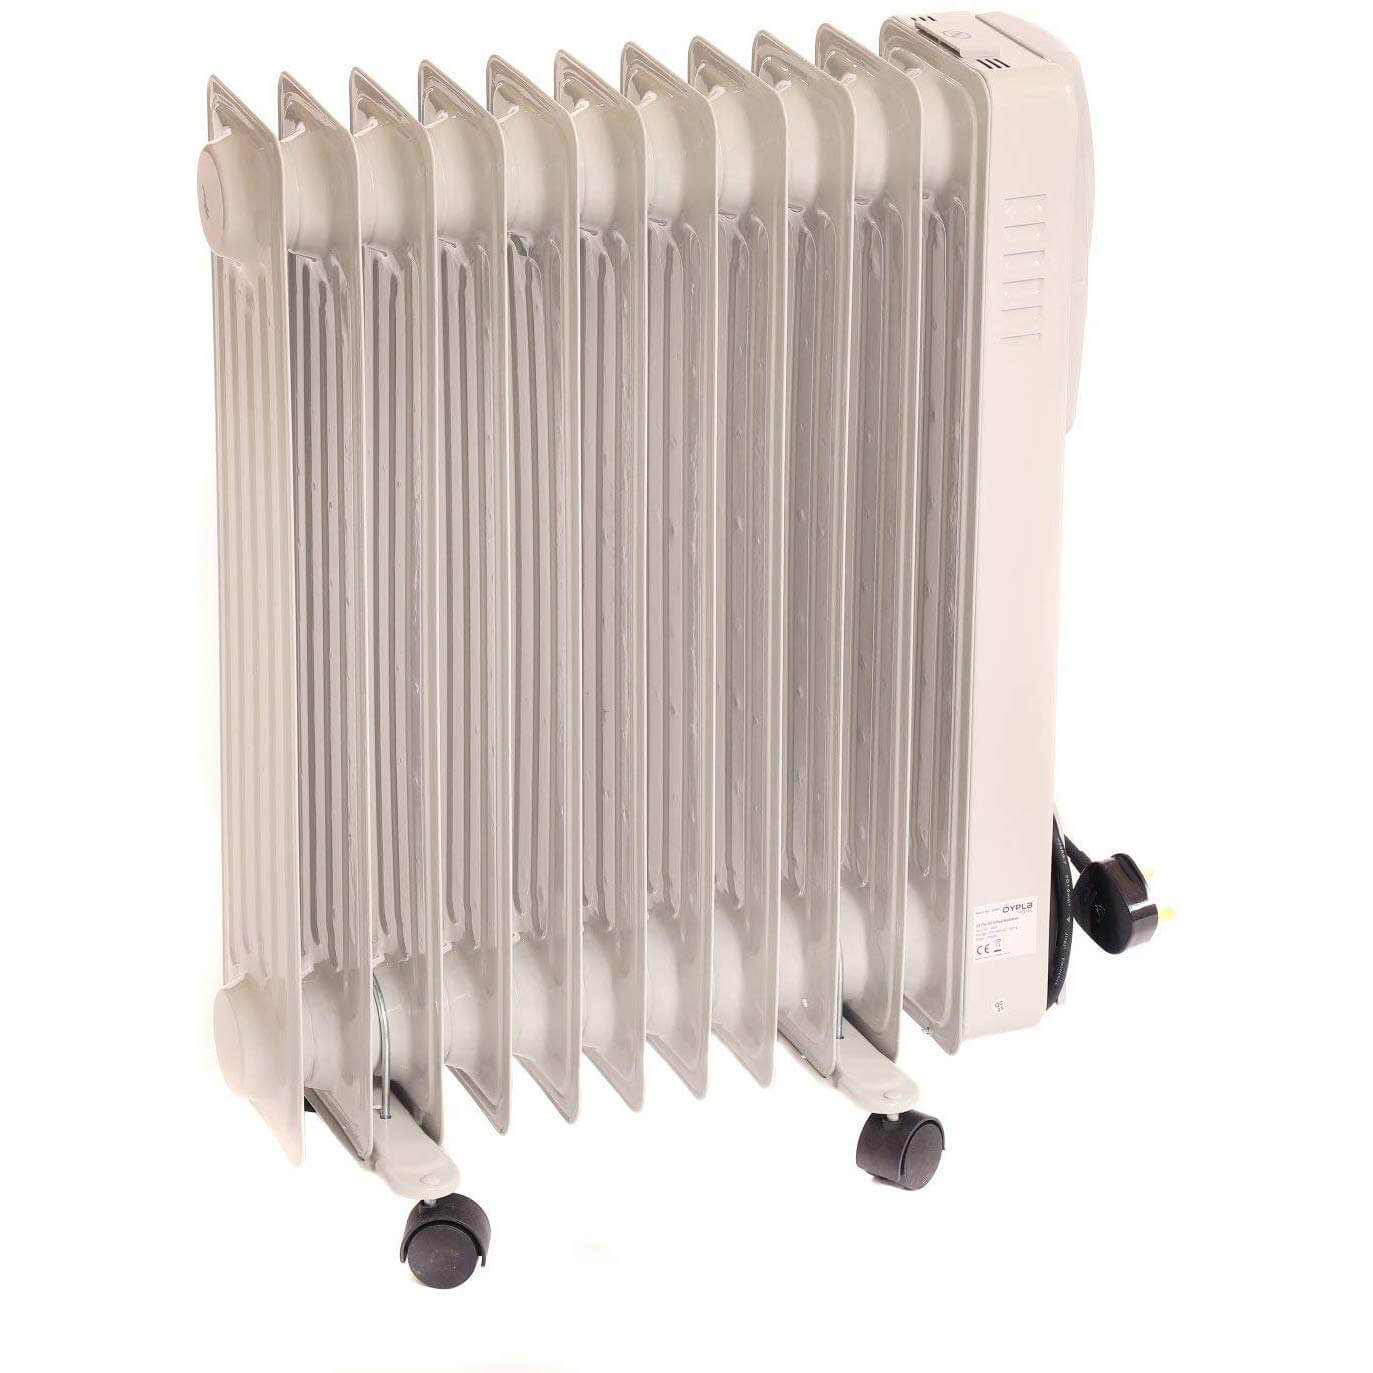 Oypla Electrical Portable Oil Filled Radiator